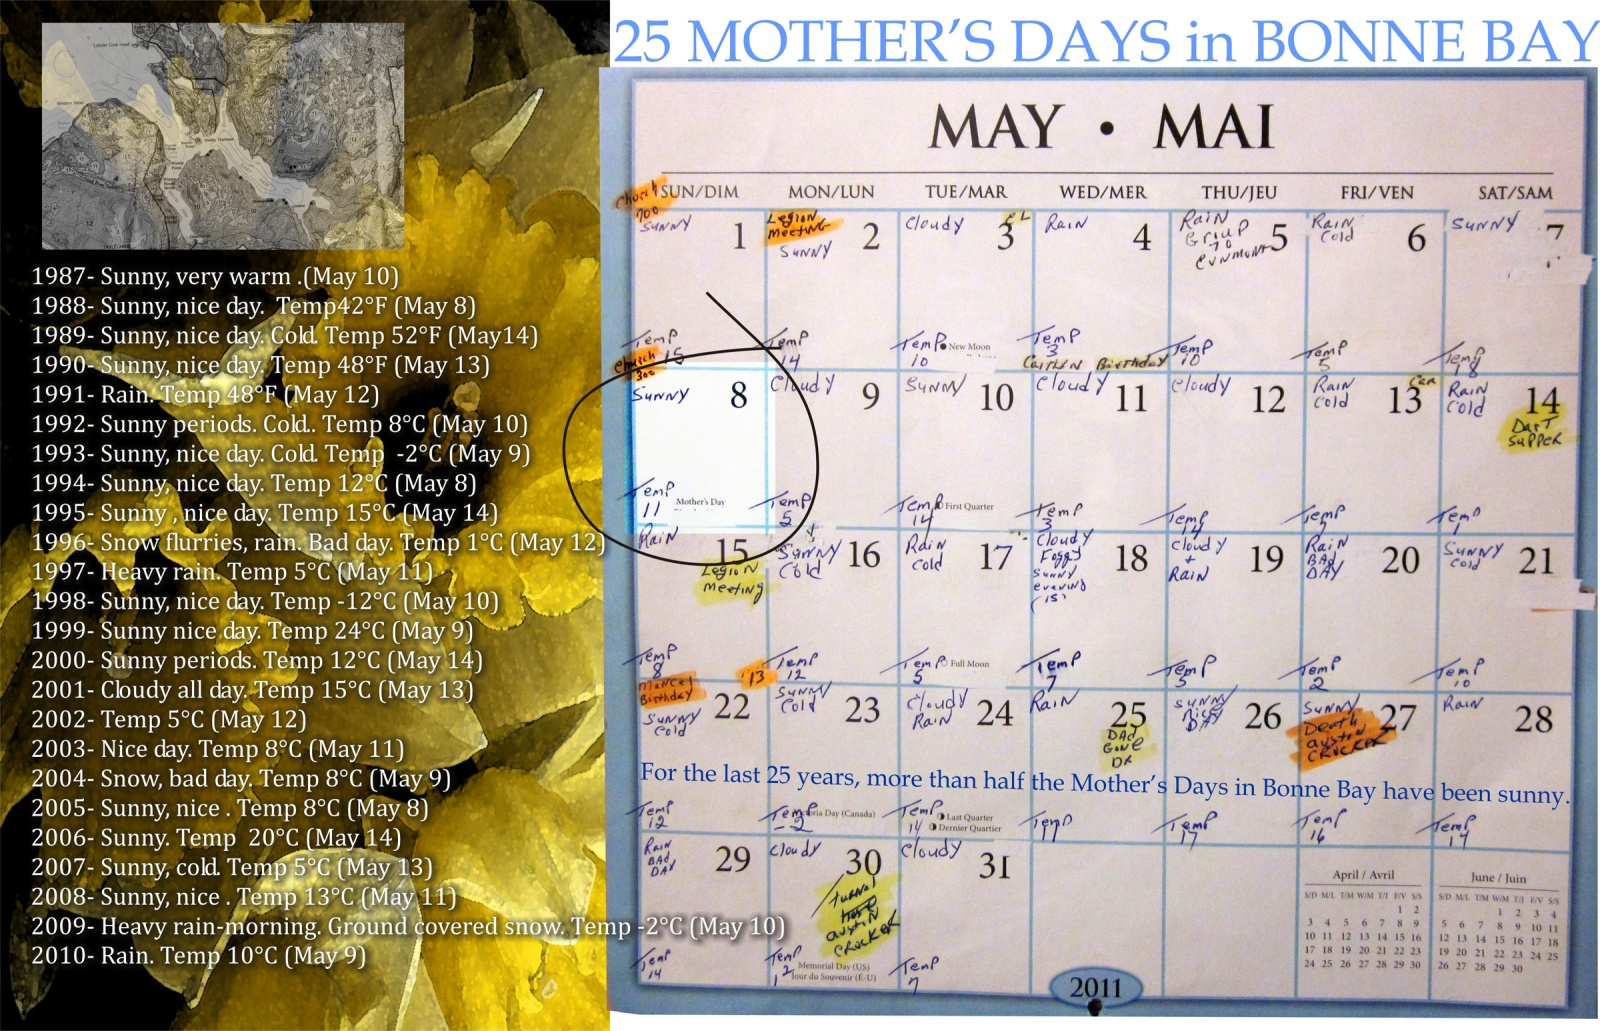 25 Mother's Days in Bonne Bay